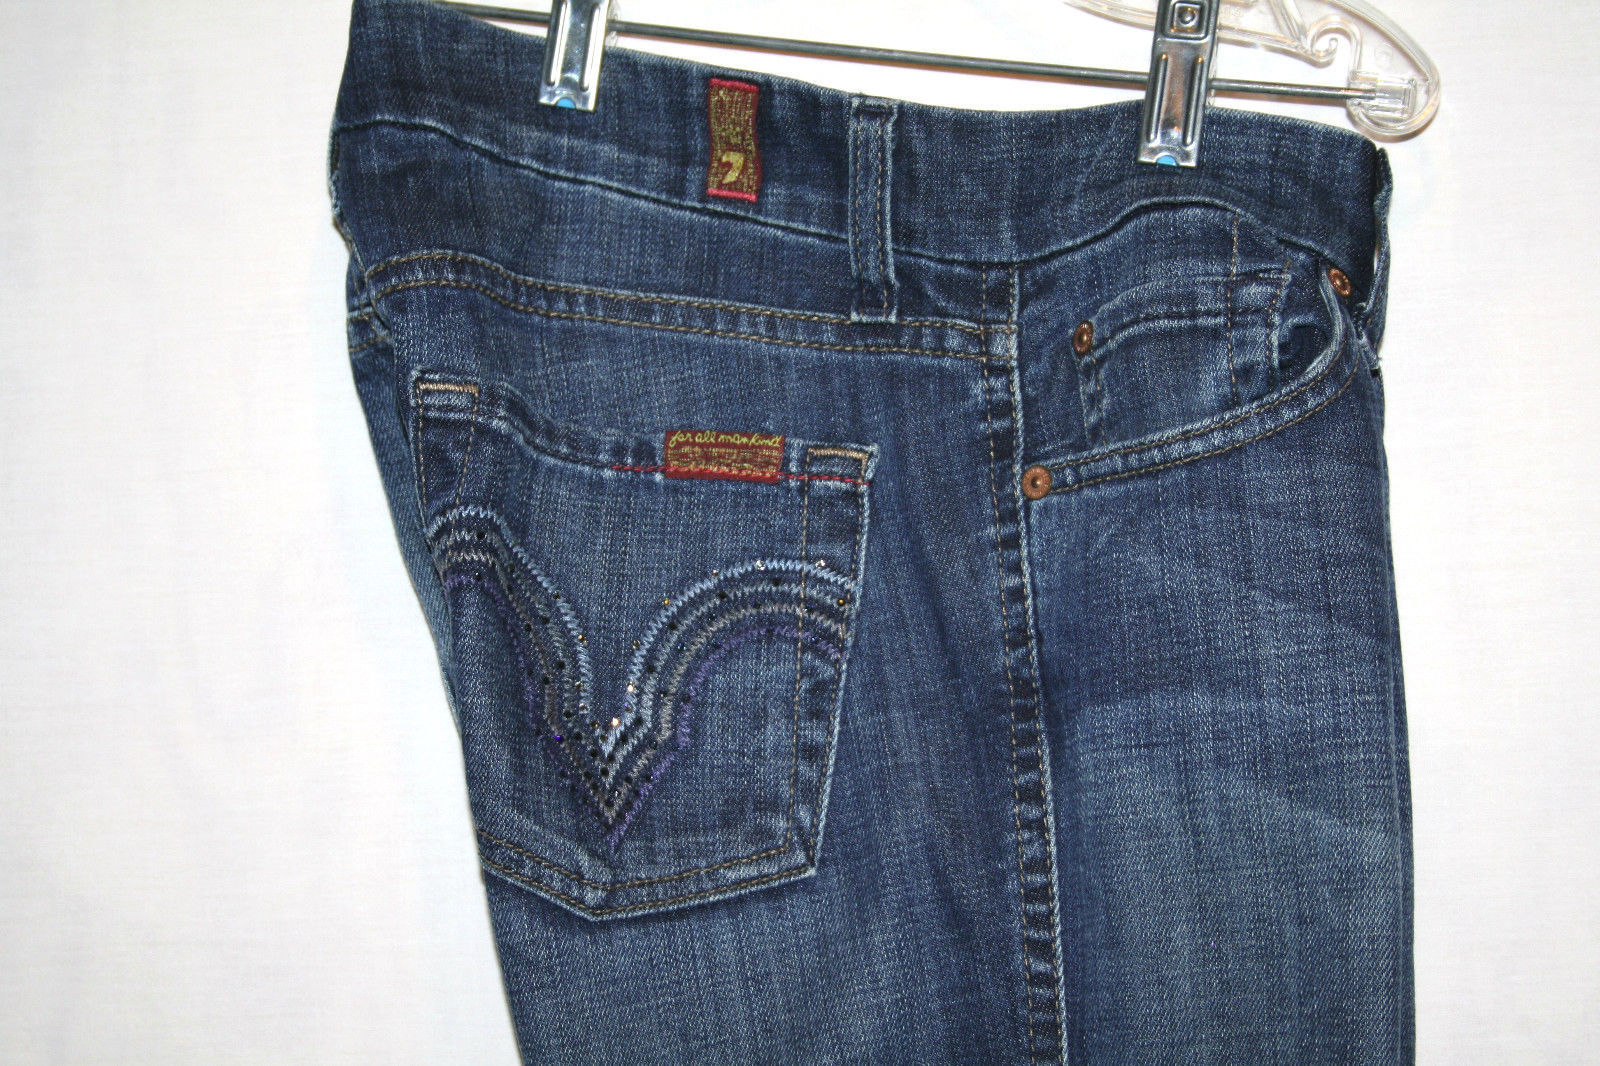 7 FOR ALL MANKIND Low Rise Slim Stretch KATE 5 pkt Jeans Size 26    #629